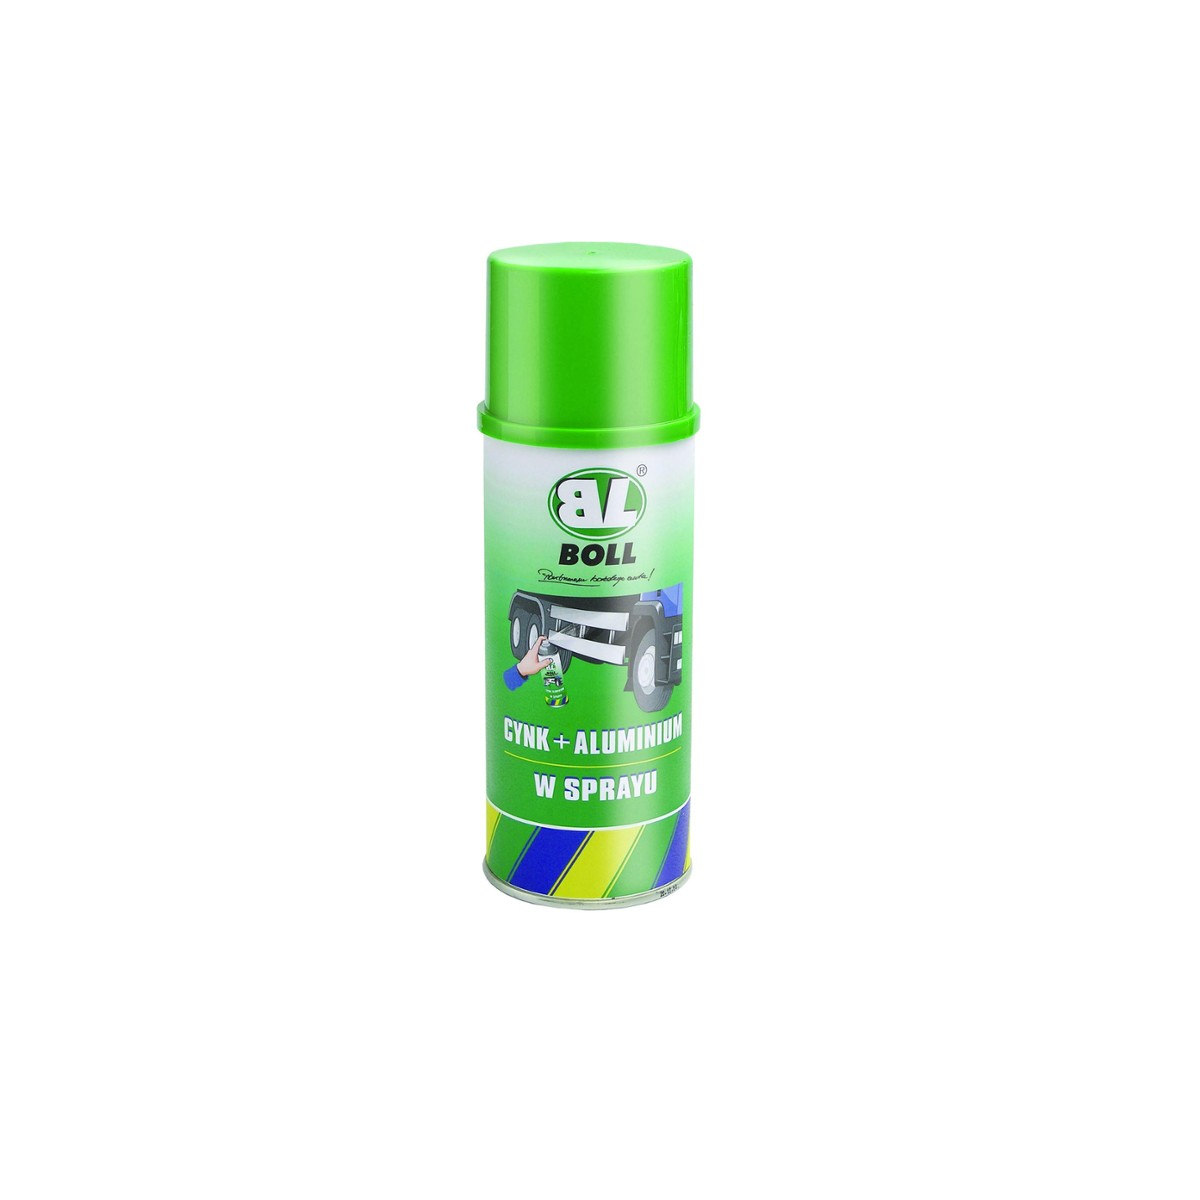 BOLL Cynk + aluminium - spray 400 ml